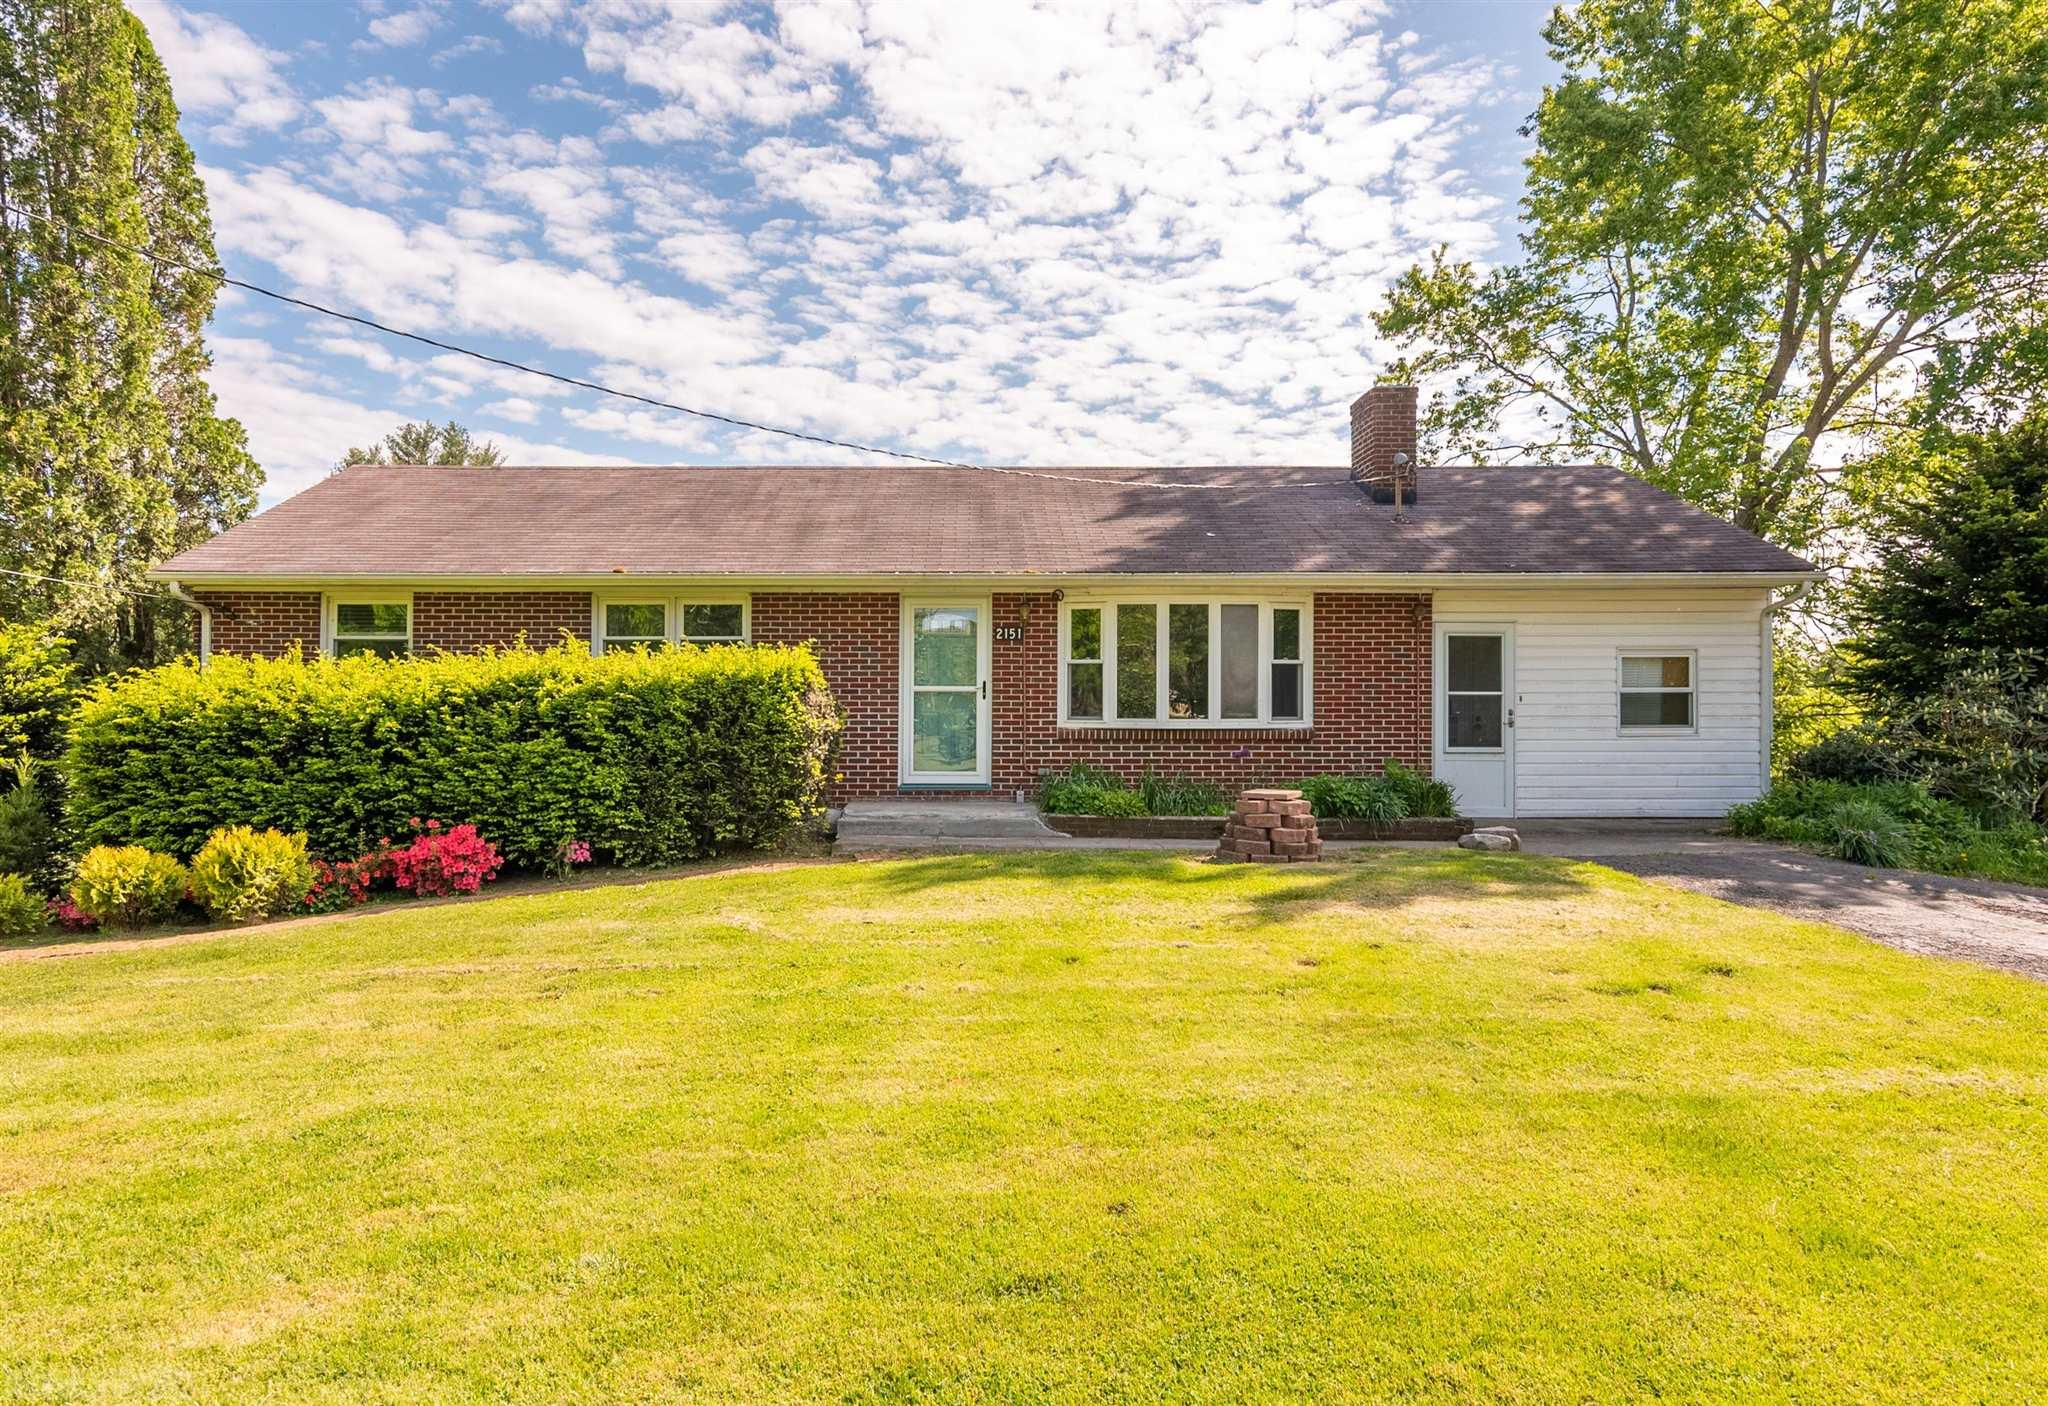 This charming, 3 bed/2 bath brick ranch, which sits on 2+ gorgeous acres, with a double driveway is ready for its new owners! With nice hardwood floors, tons of natural light through the replacement windows, newer HVAC for heat and air on the main floor (2014) and a cozy wood burning fireplace in the living room, this place is a gem. The main floor features three spacious bedrooms and a full bathroom, a living room with a fireplace, a den/rec room, and bright and airy kitchen. The basement has tons of potential and is perfect for anyone looking to put their own touches on the space. Downstairs you will find a full bathroom, laundry room, a potential 4th bedroom, a partial second kitchen, and a wood burning stove for heat. Step outside to relax on the back deck, and enjoy the fire pit surrounded by fruit trees, a huge yard, and plenty of garden space. Septic just pumped and new line installed in April. The house is being sold as-is.   Great investment or first time home buyer property!